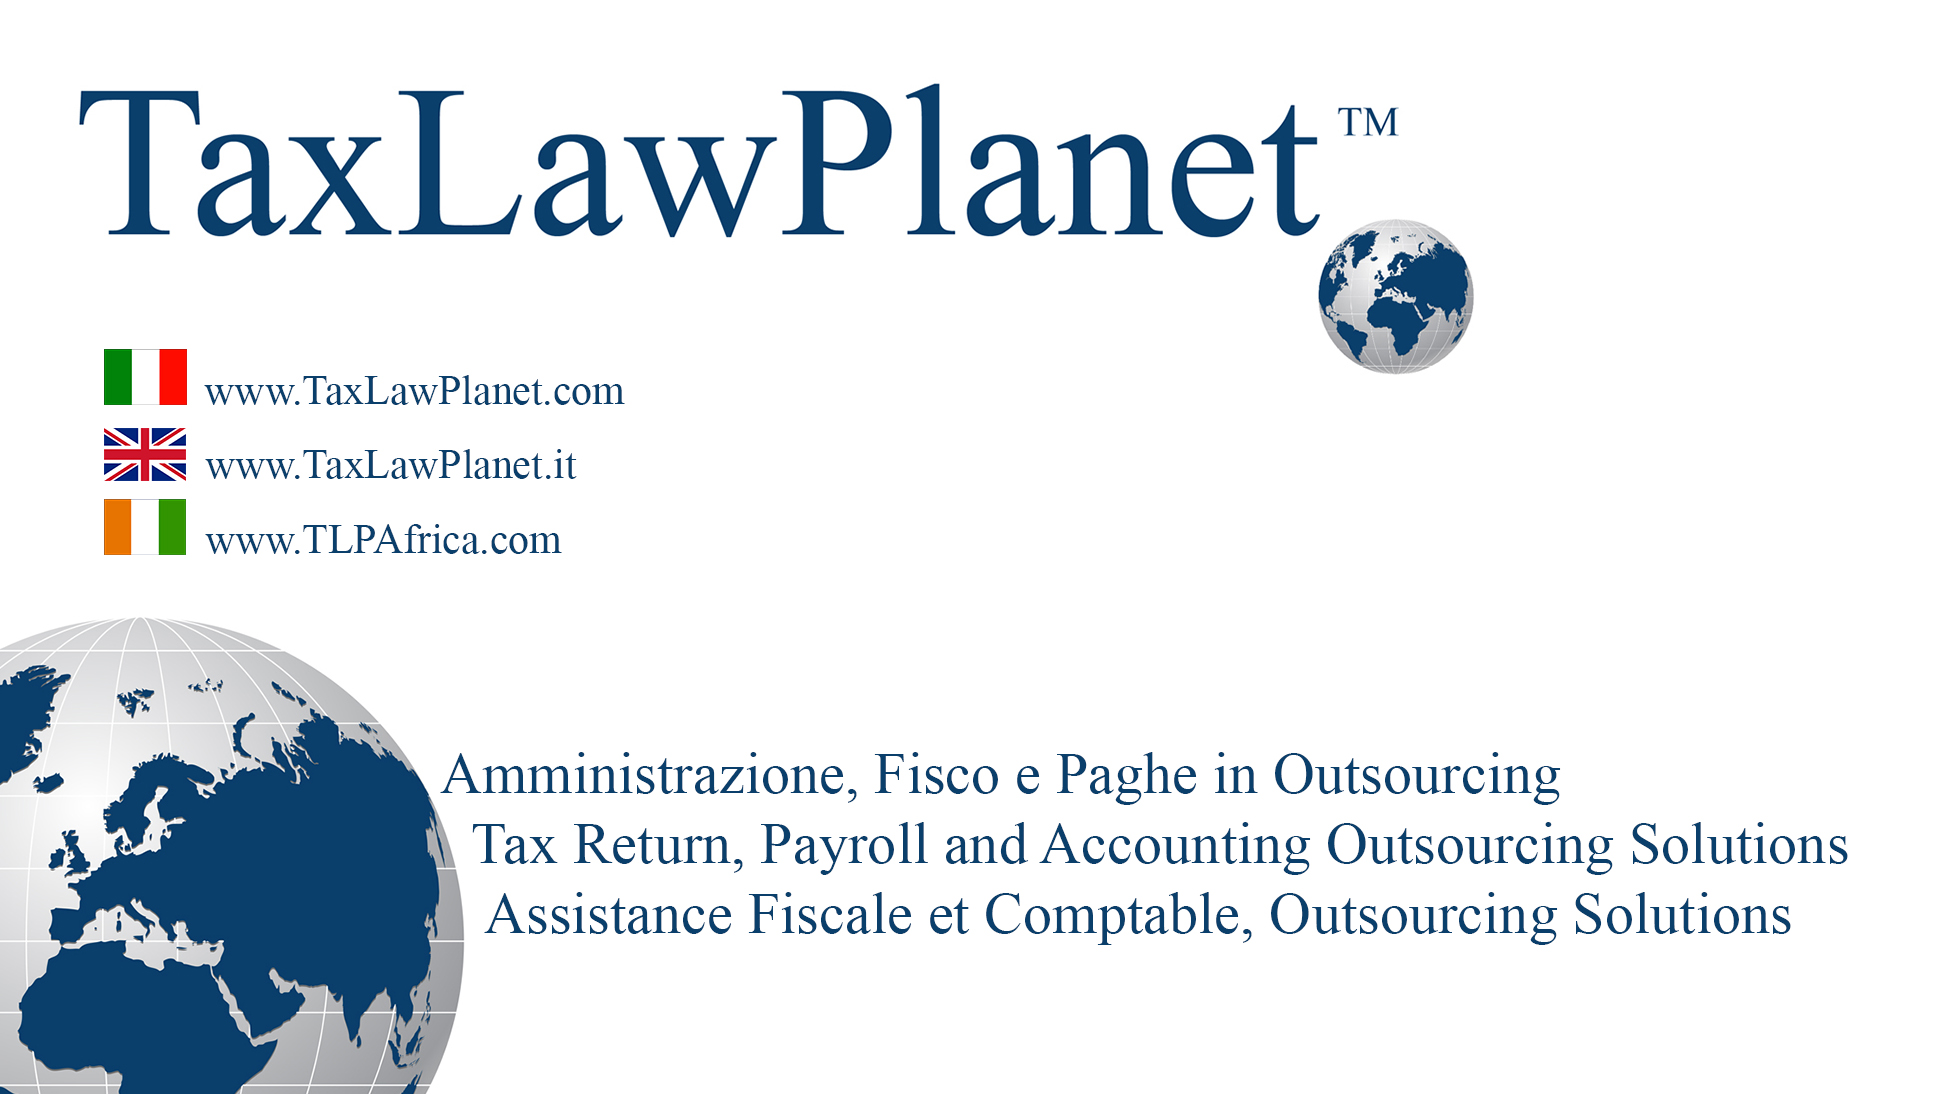 Taxlawplanet